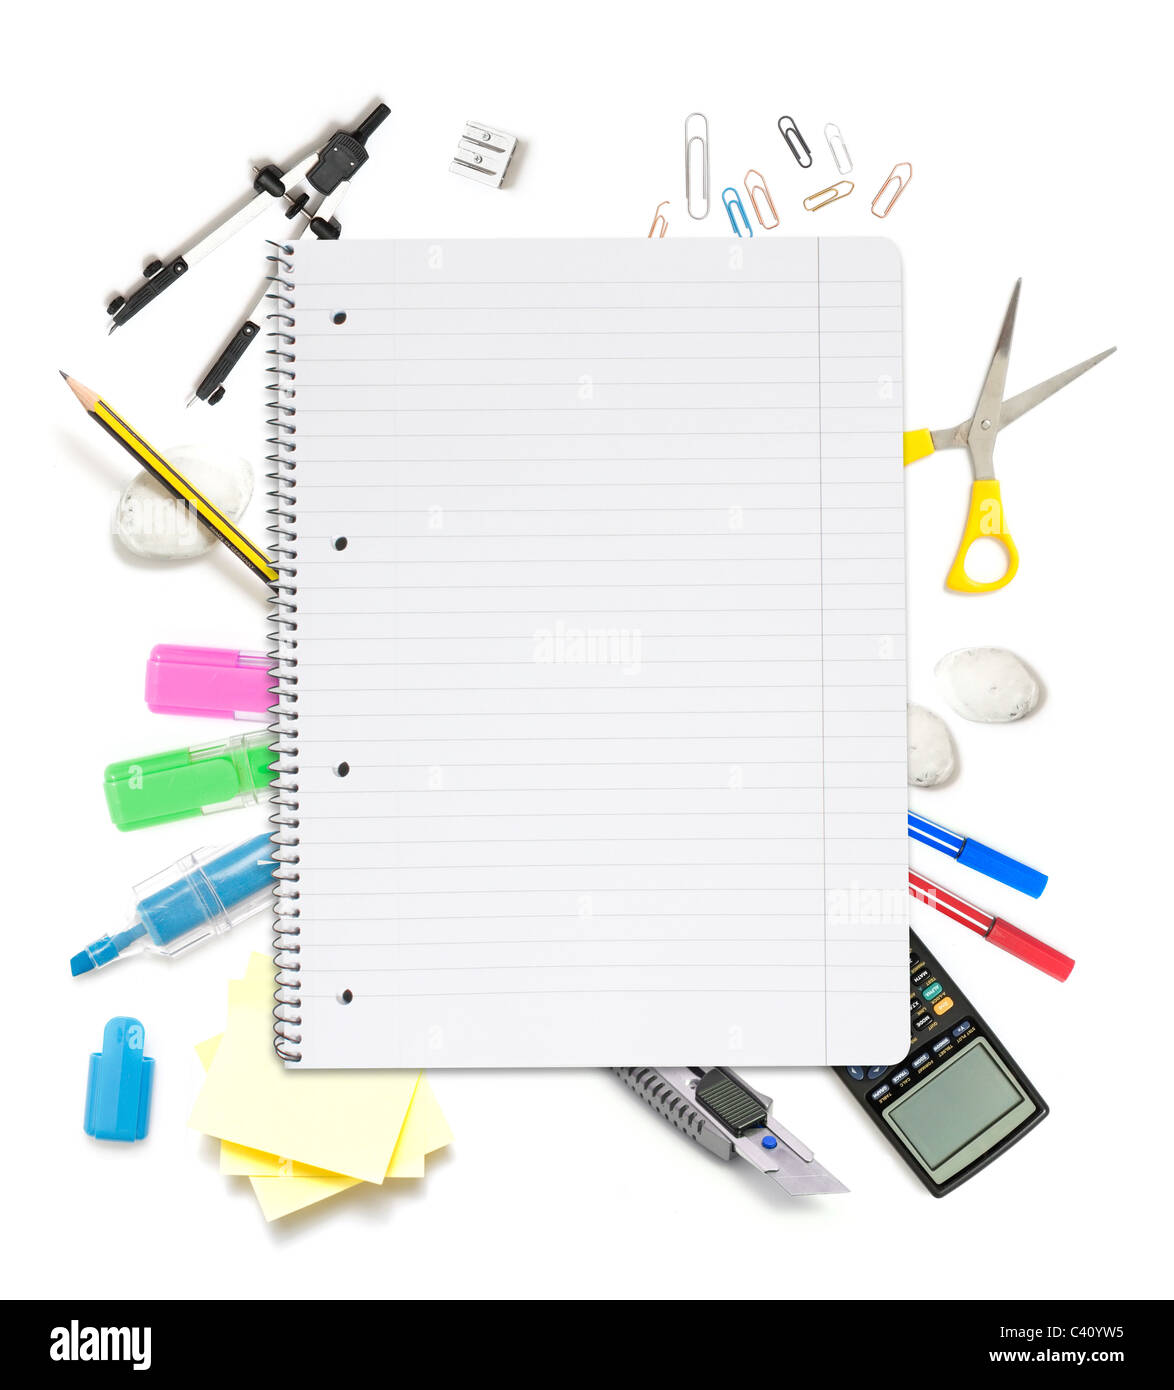 Notepad with lots of office objects - Stock Image